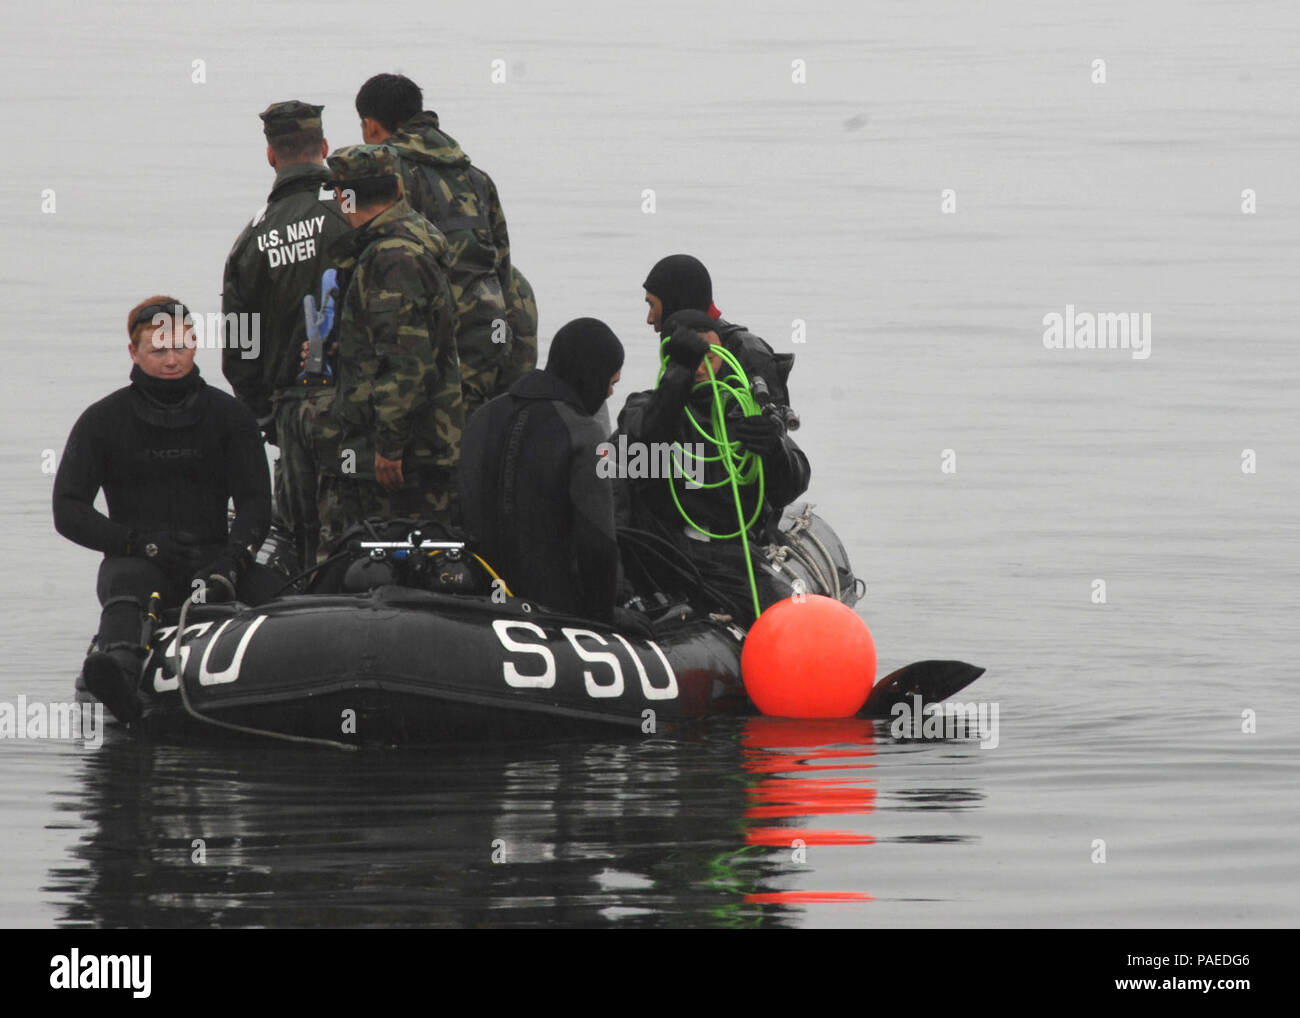 CHINHAE, Republic of Korea (Mar. 19, 2009) Seabees from Underwater Construction Team (UCT) 2 and Mobile Diving and Salvage Unit participate in an underwater welding exercise with the Republic of Korea Navy (ROKN).  U.S. Armed Forces are working with Republic of  Korea Armed Forces during Exercise Key Resolve/Foal Eagle 2009, which is an annual joint exercise involving forces from both the United States and the Republic of Korea. U.S. Navy Stock Photo